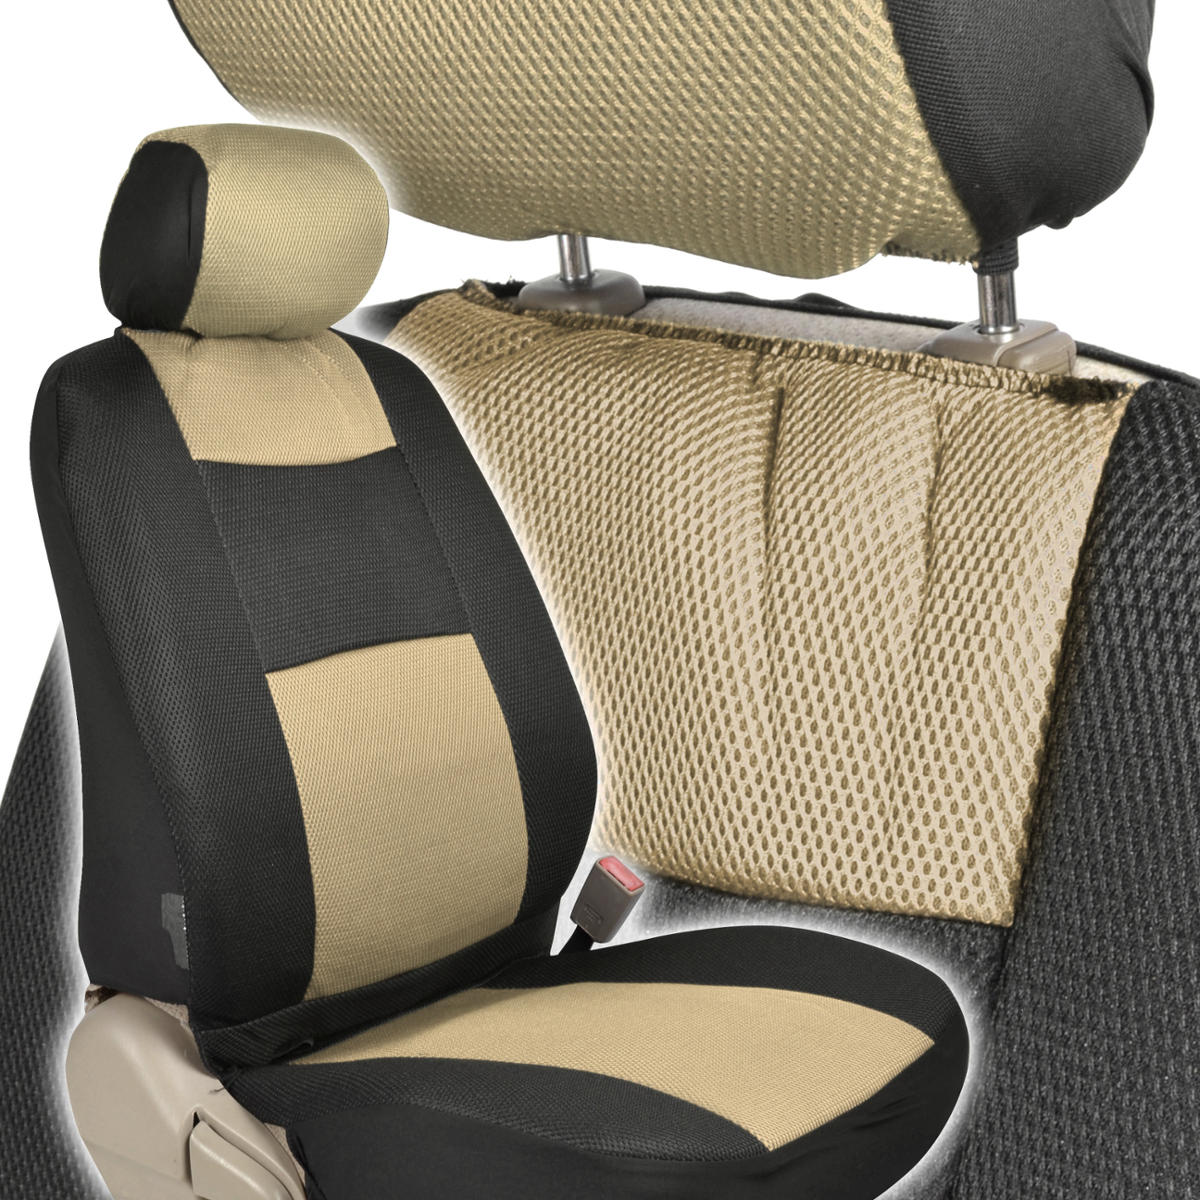 black beige mesh car seat covers premier model thickest fabric padding. Black Bedroom Furniture Sets. Home Design Ideas